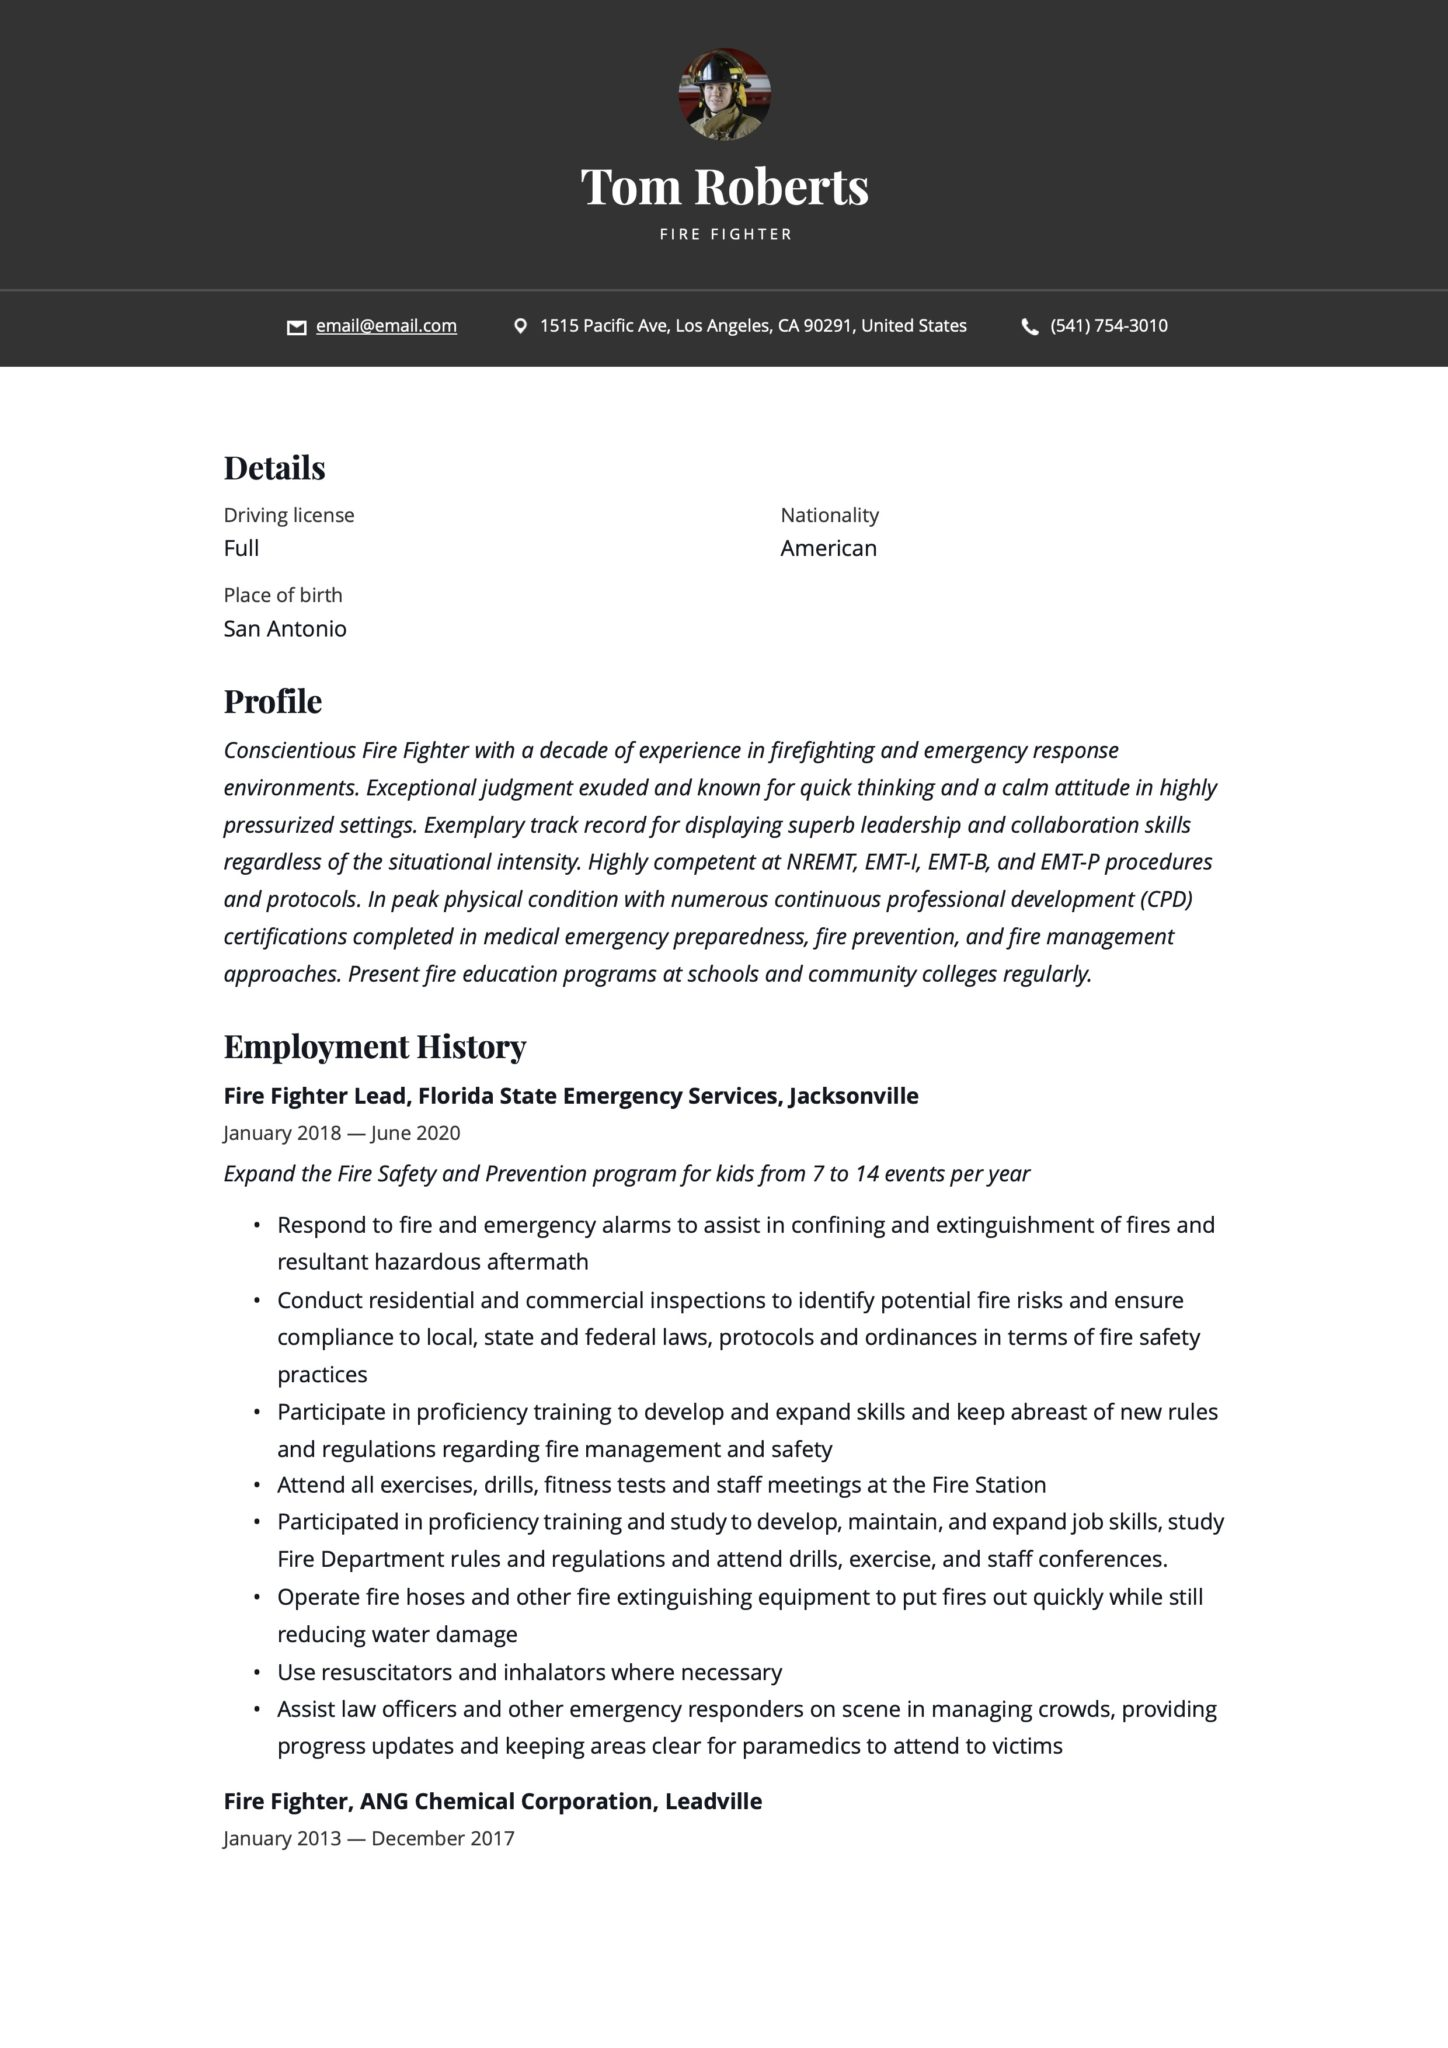 firefighter resume  writing guide  17 templates  2020